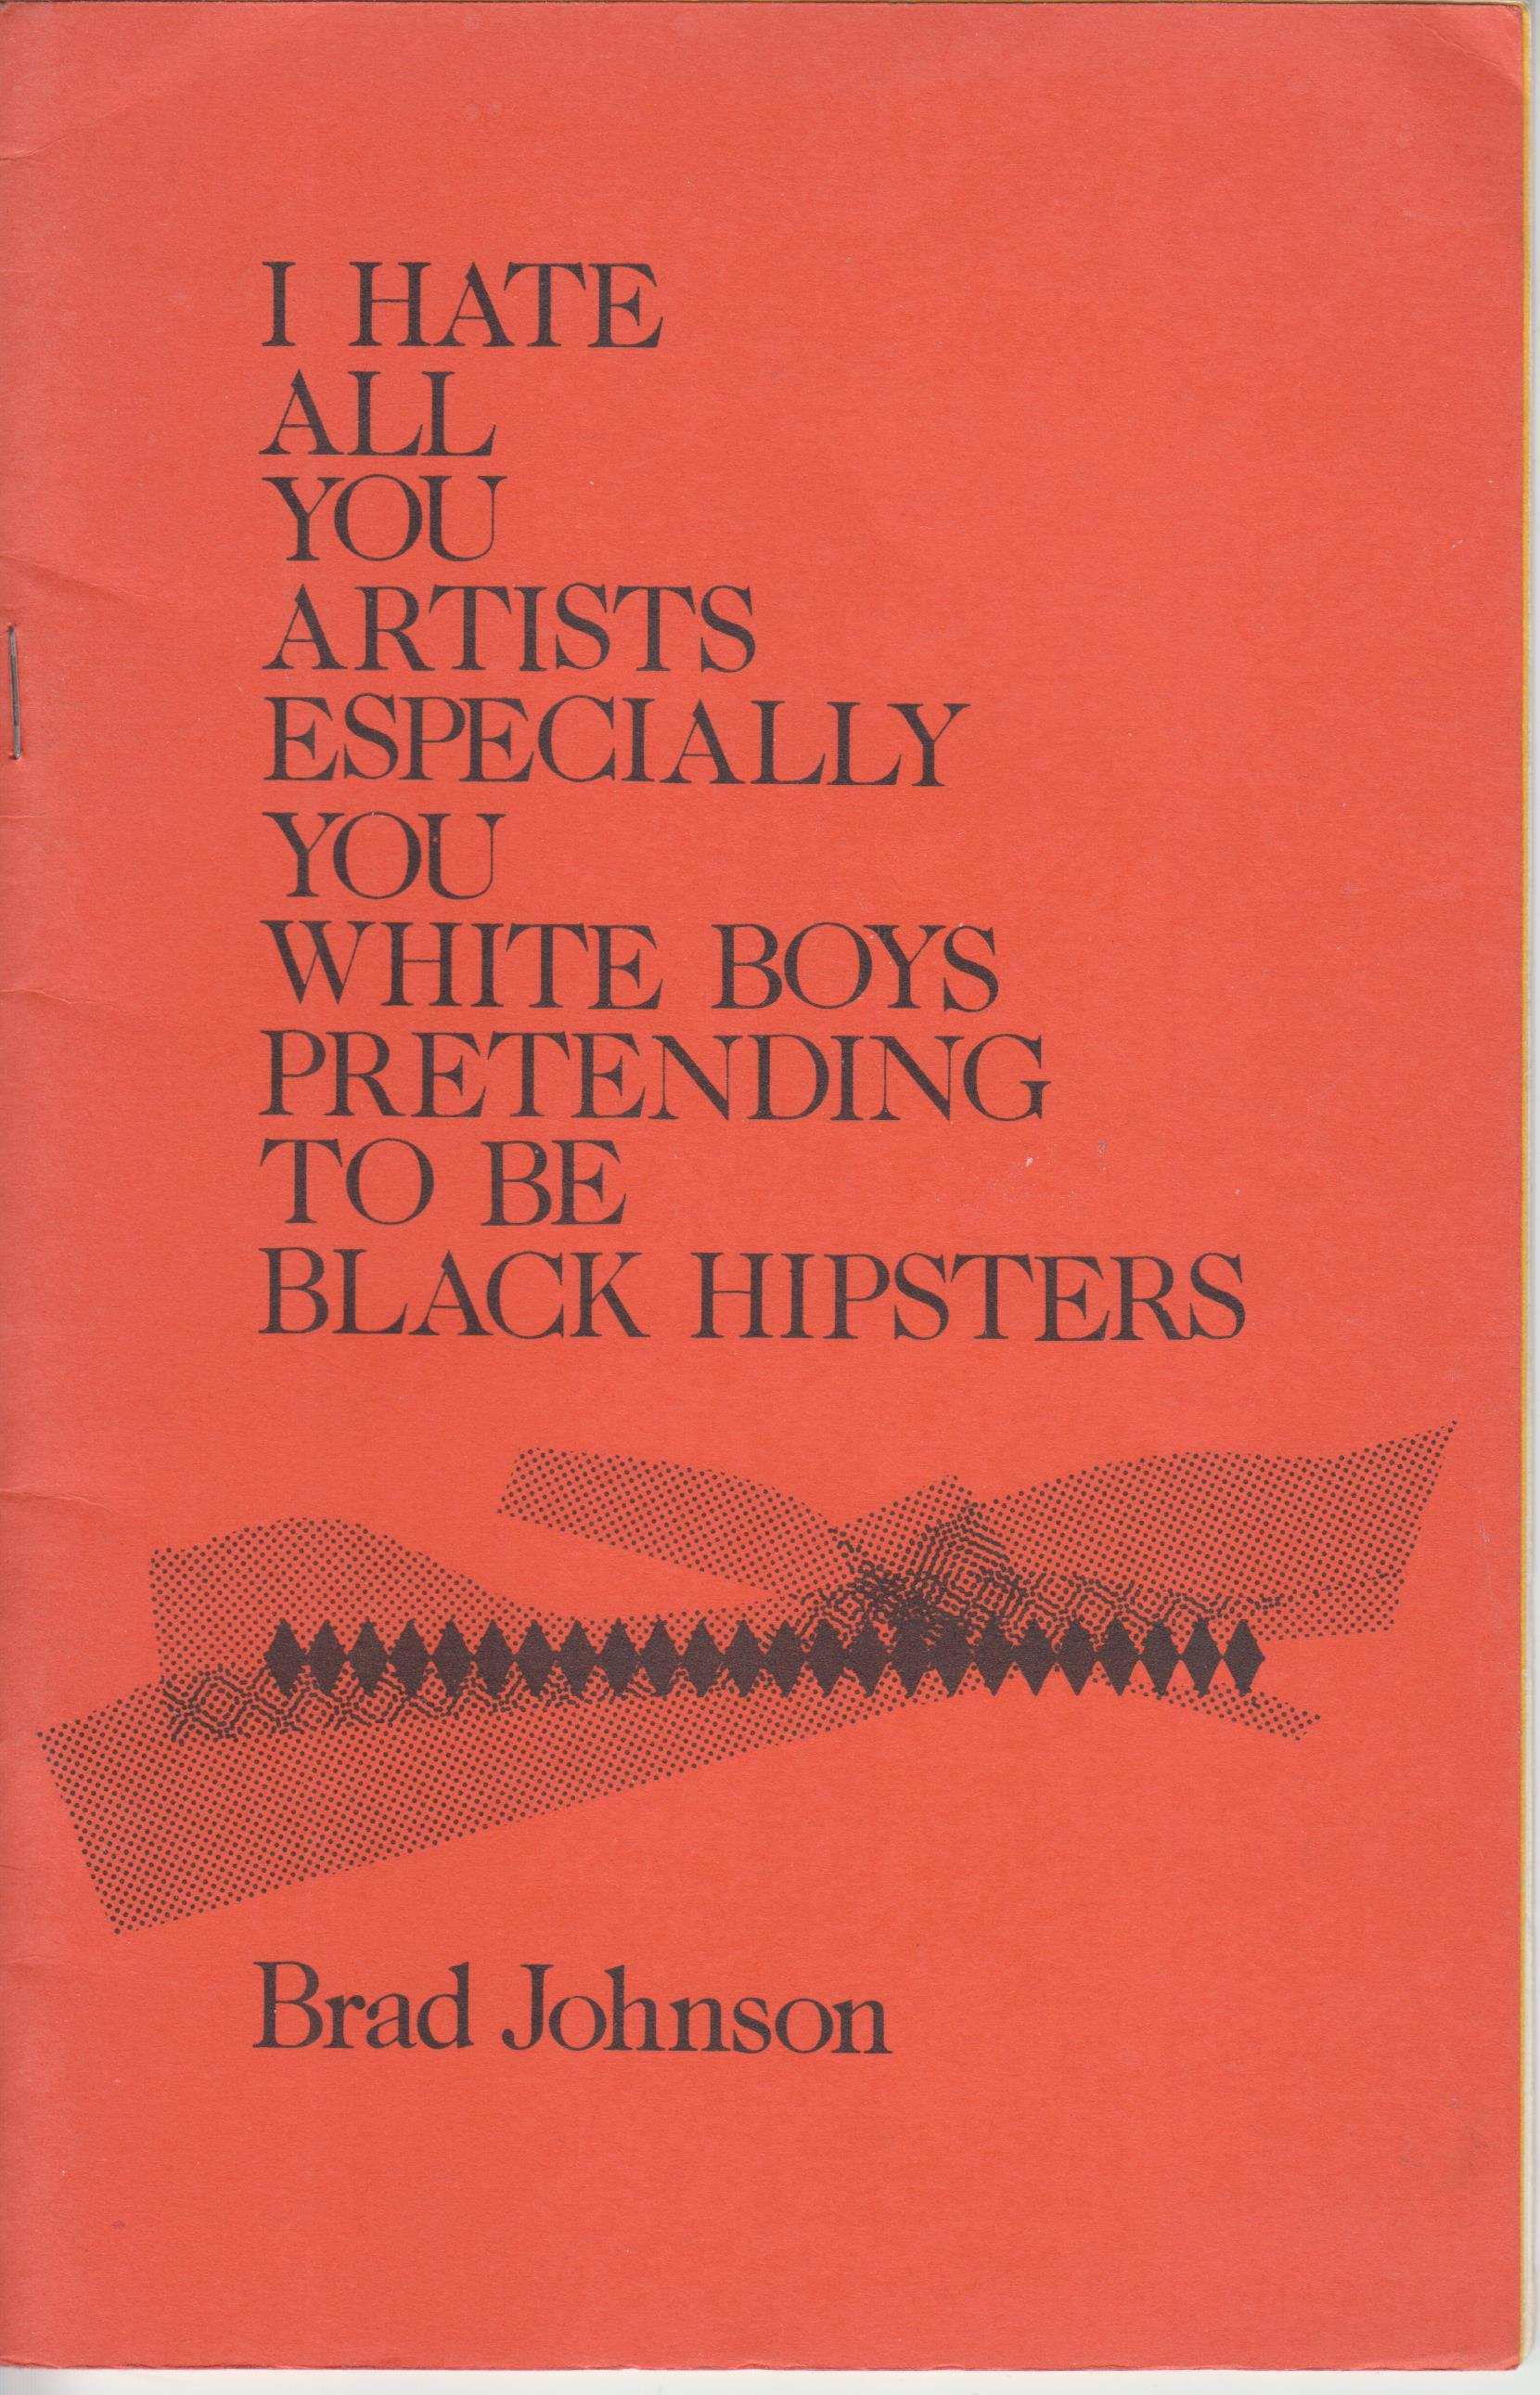 Image for I Hate All You Artists Especially You White Boys Pretending to Be Black Hipsters